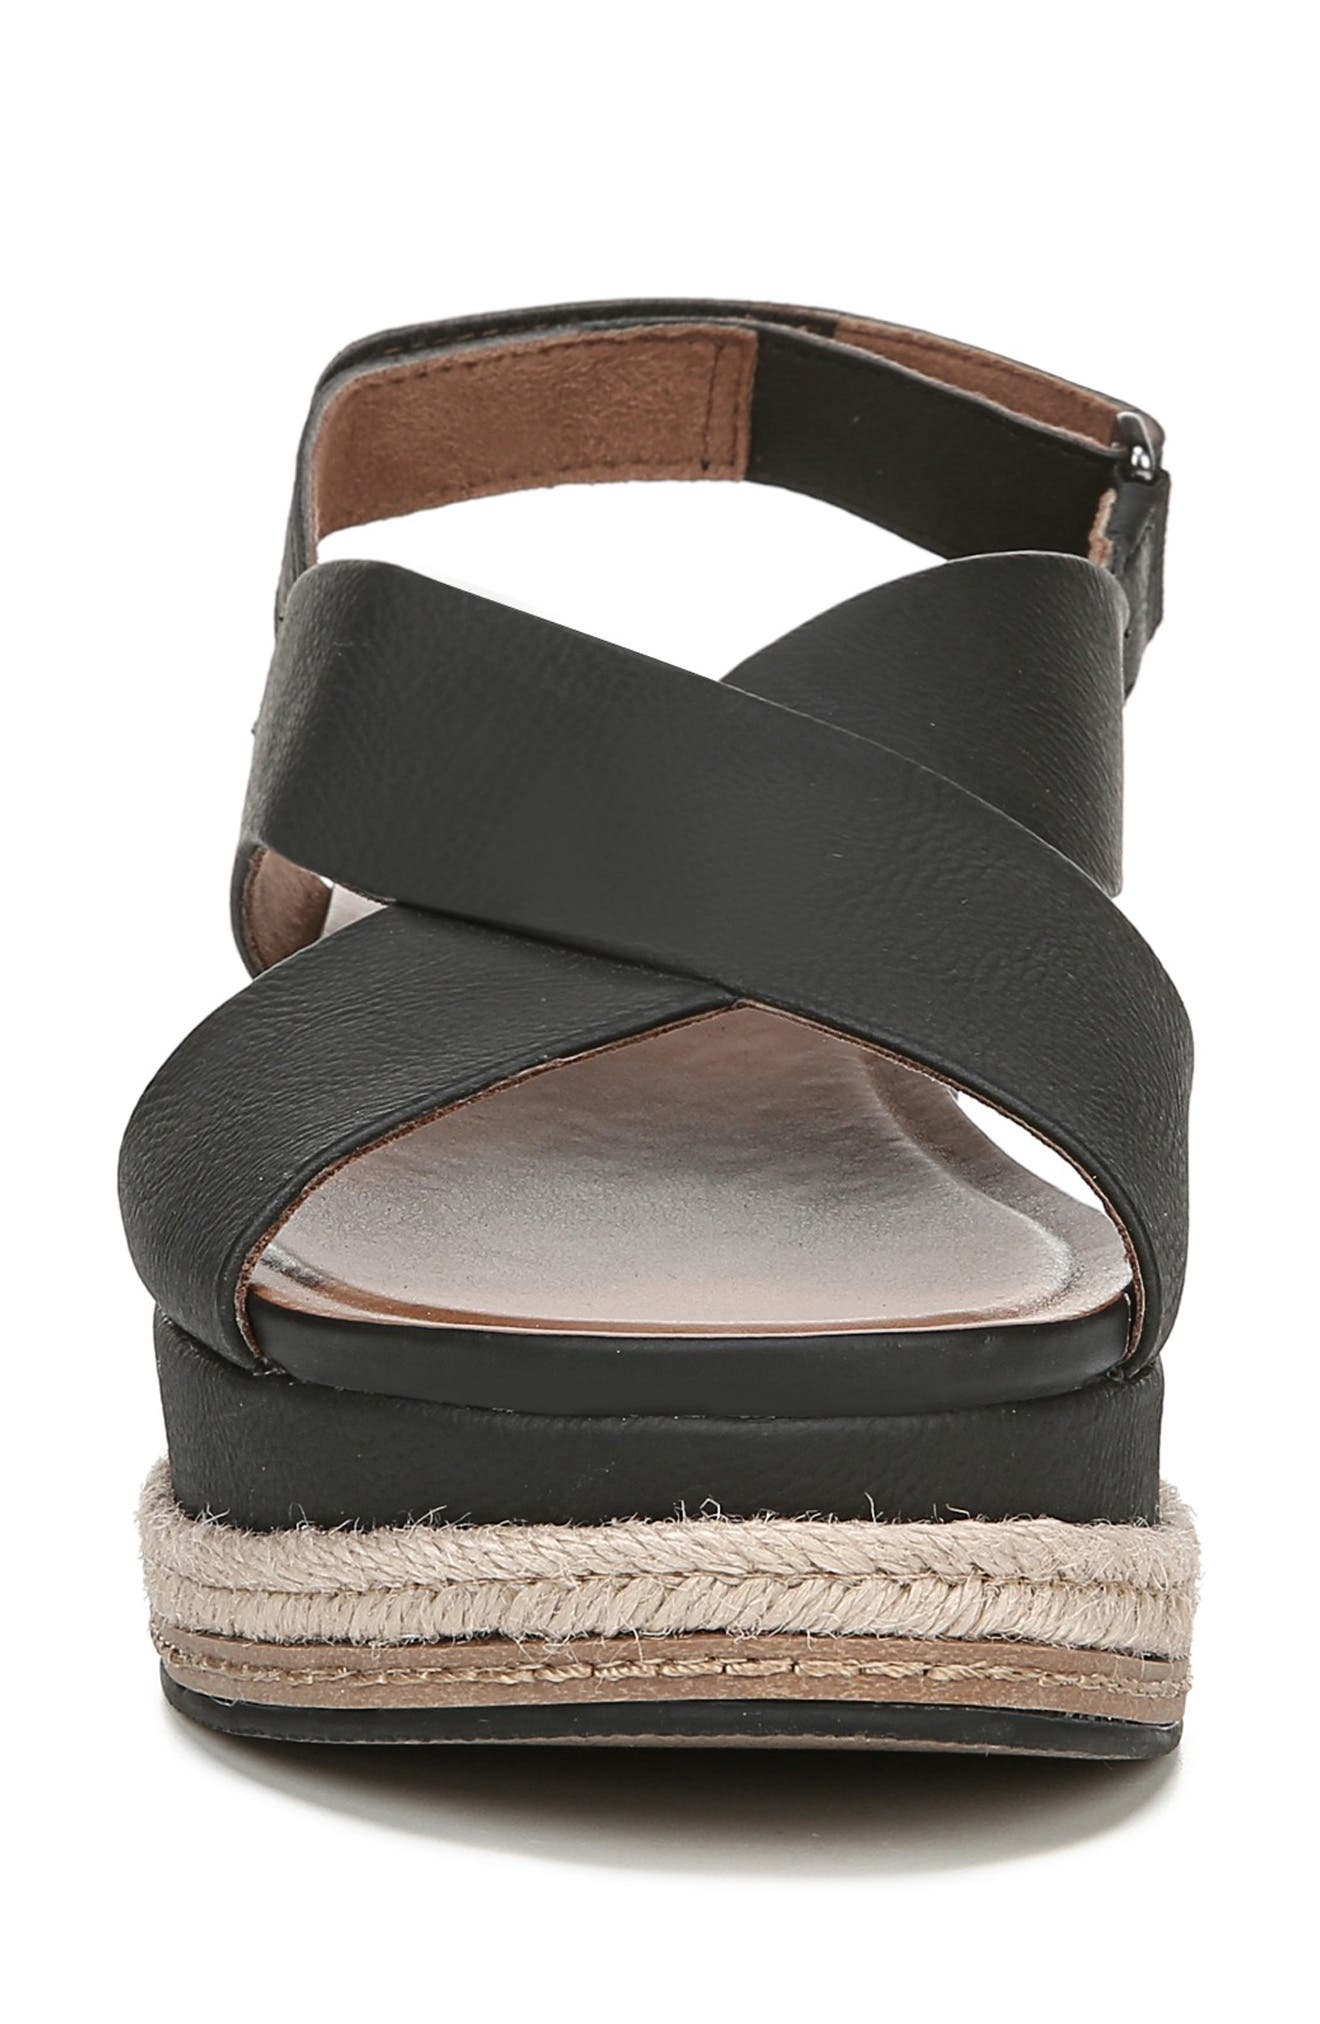 NATURALIZER, Baya Espadrille Wedge Sandal, Alternate thumbnail 4, color, BLACK NUBUCK LEATHER